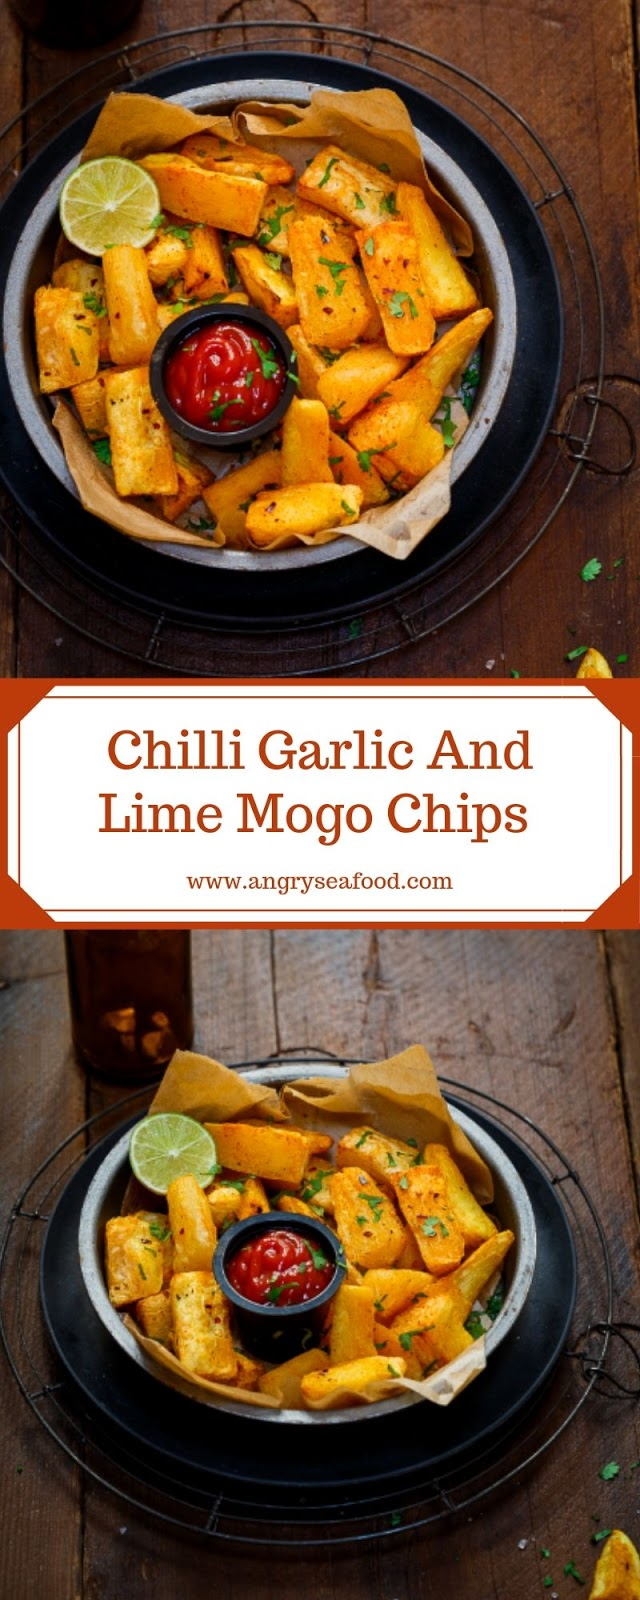 Chilli Garlic And Lime Mogo Chips